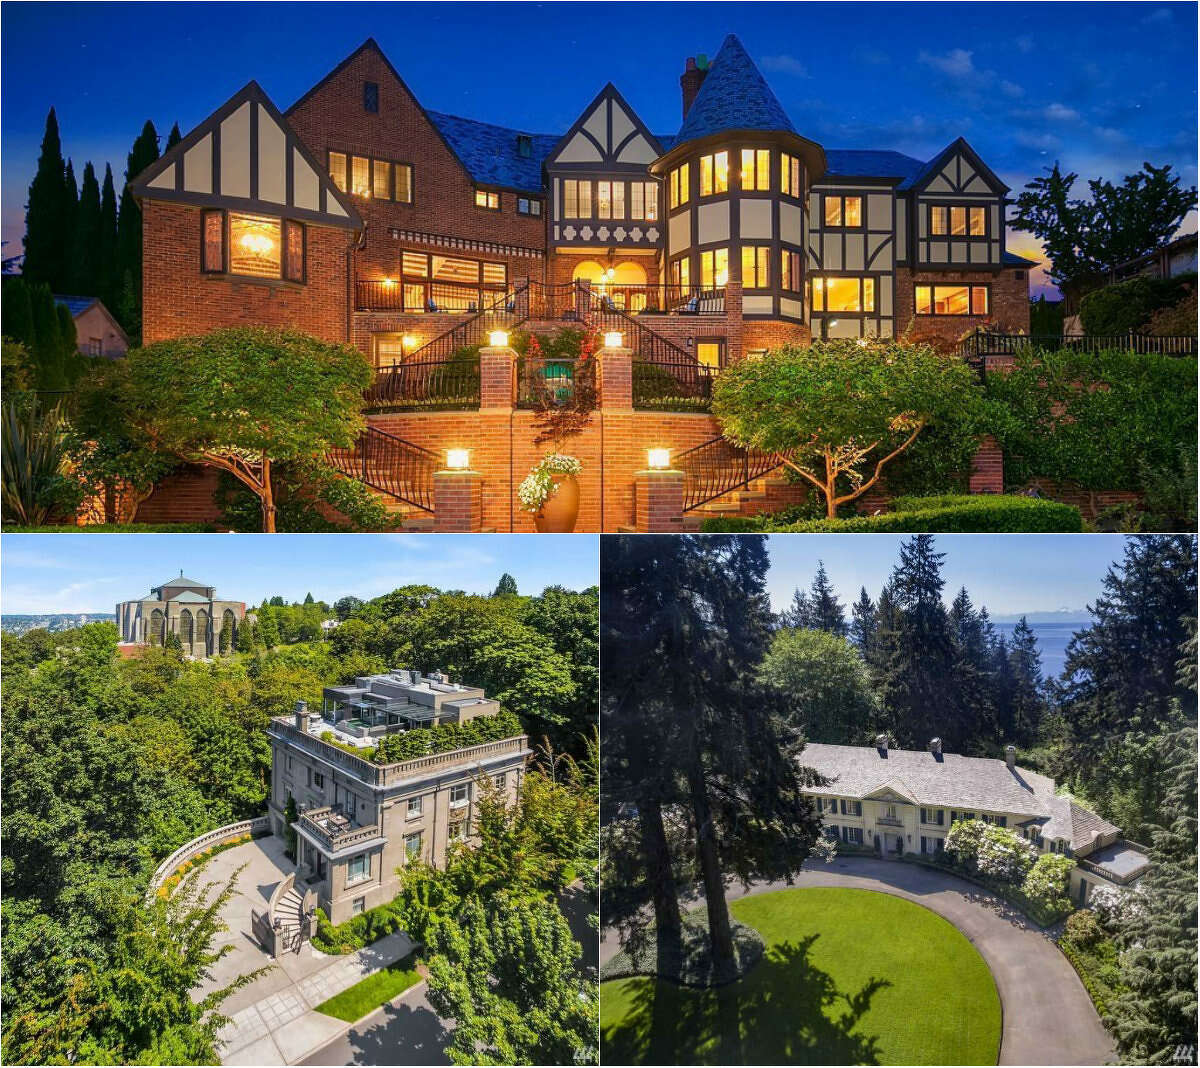 Three mansions, three lifestyles. Click through to see all the luxurious amenities a couple million can buy you in the area.